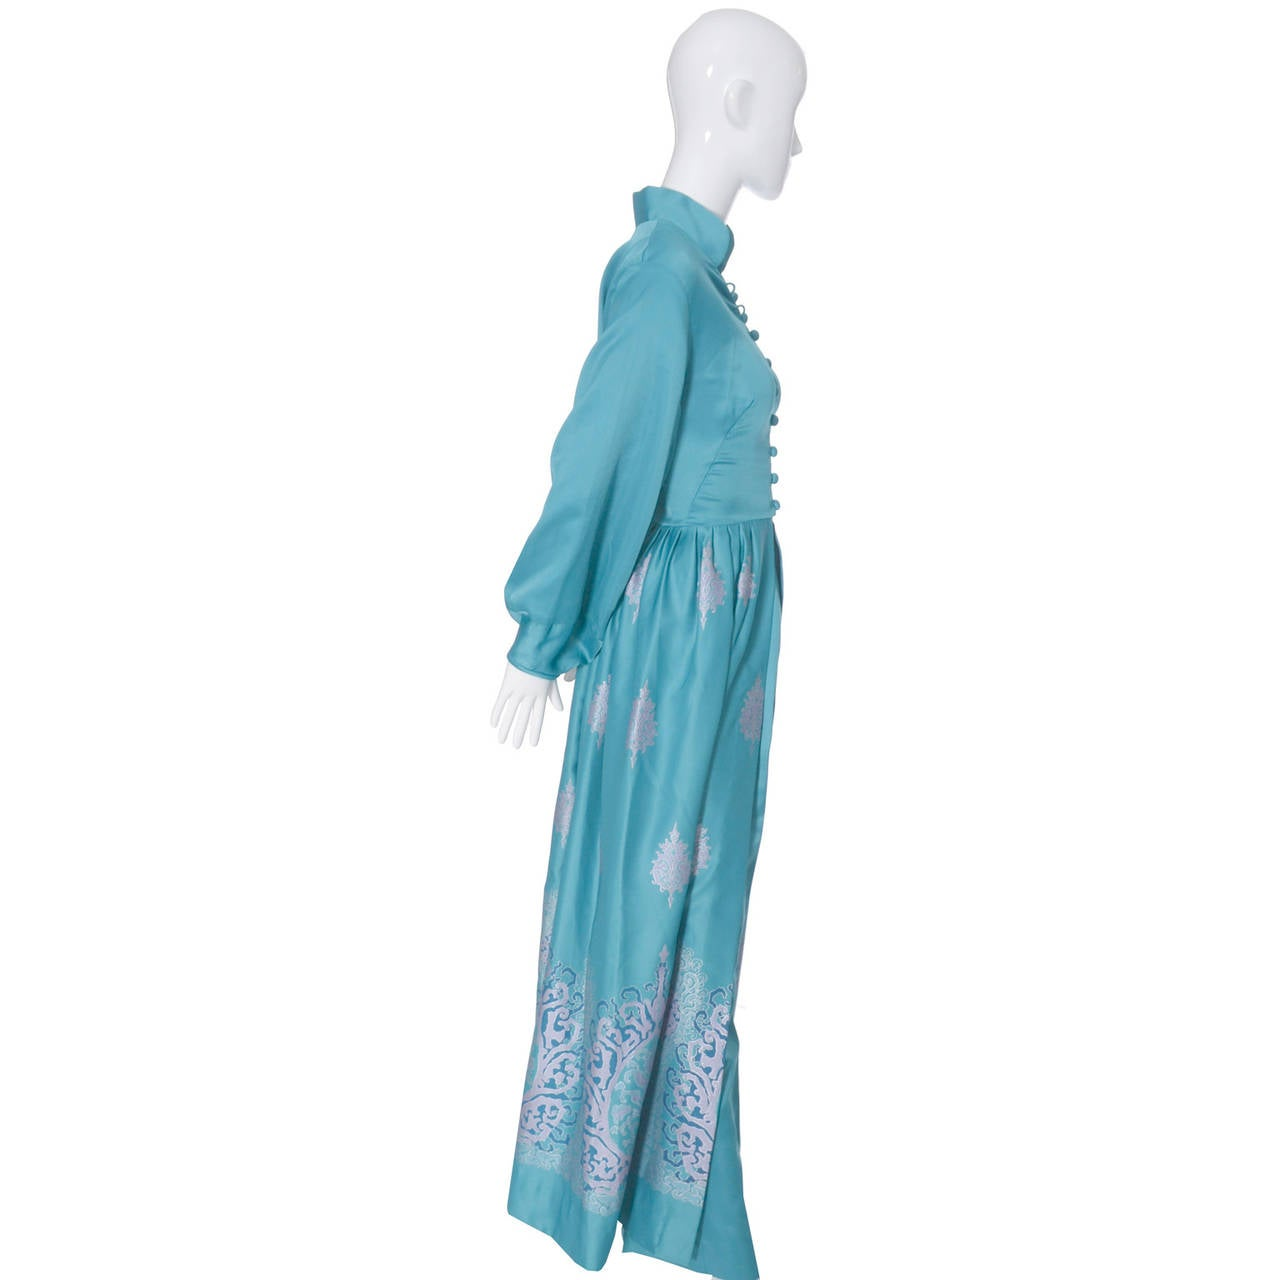 Alfred Shaheen Master Printer Vintage 2 Pc Pants Evening Coat Ensemble In New Condition For Sale In Portland, OR